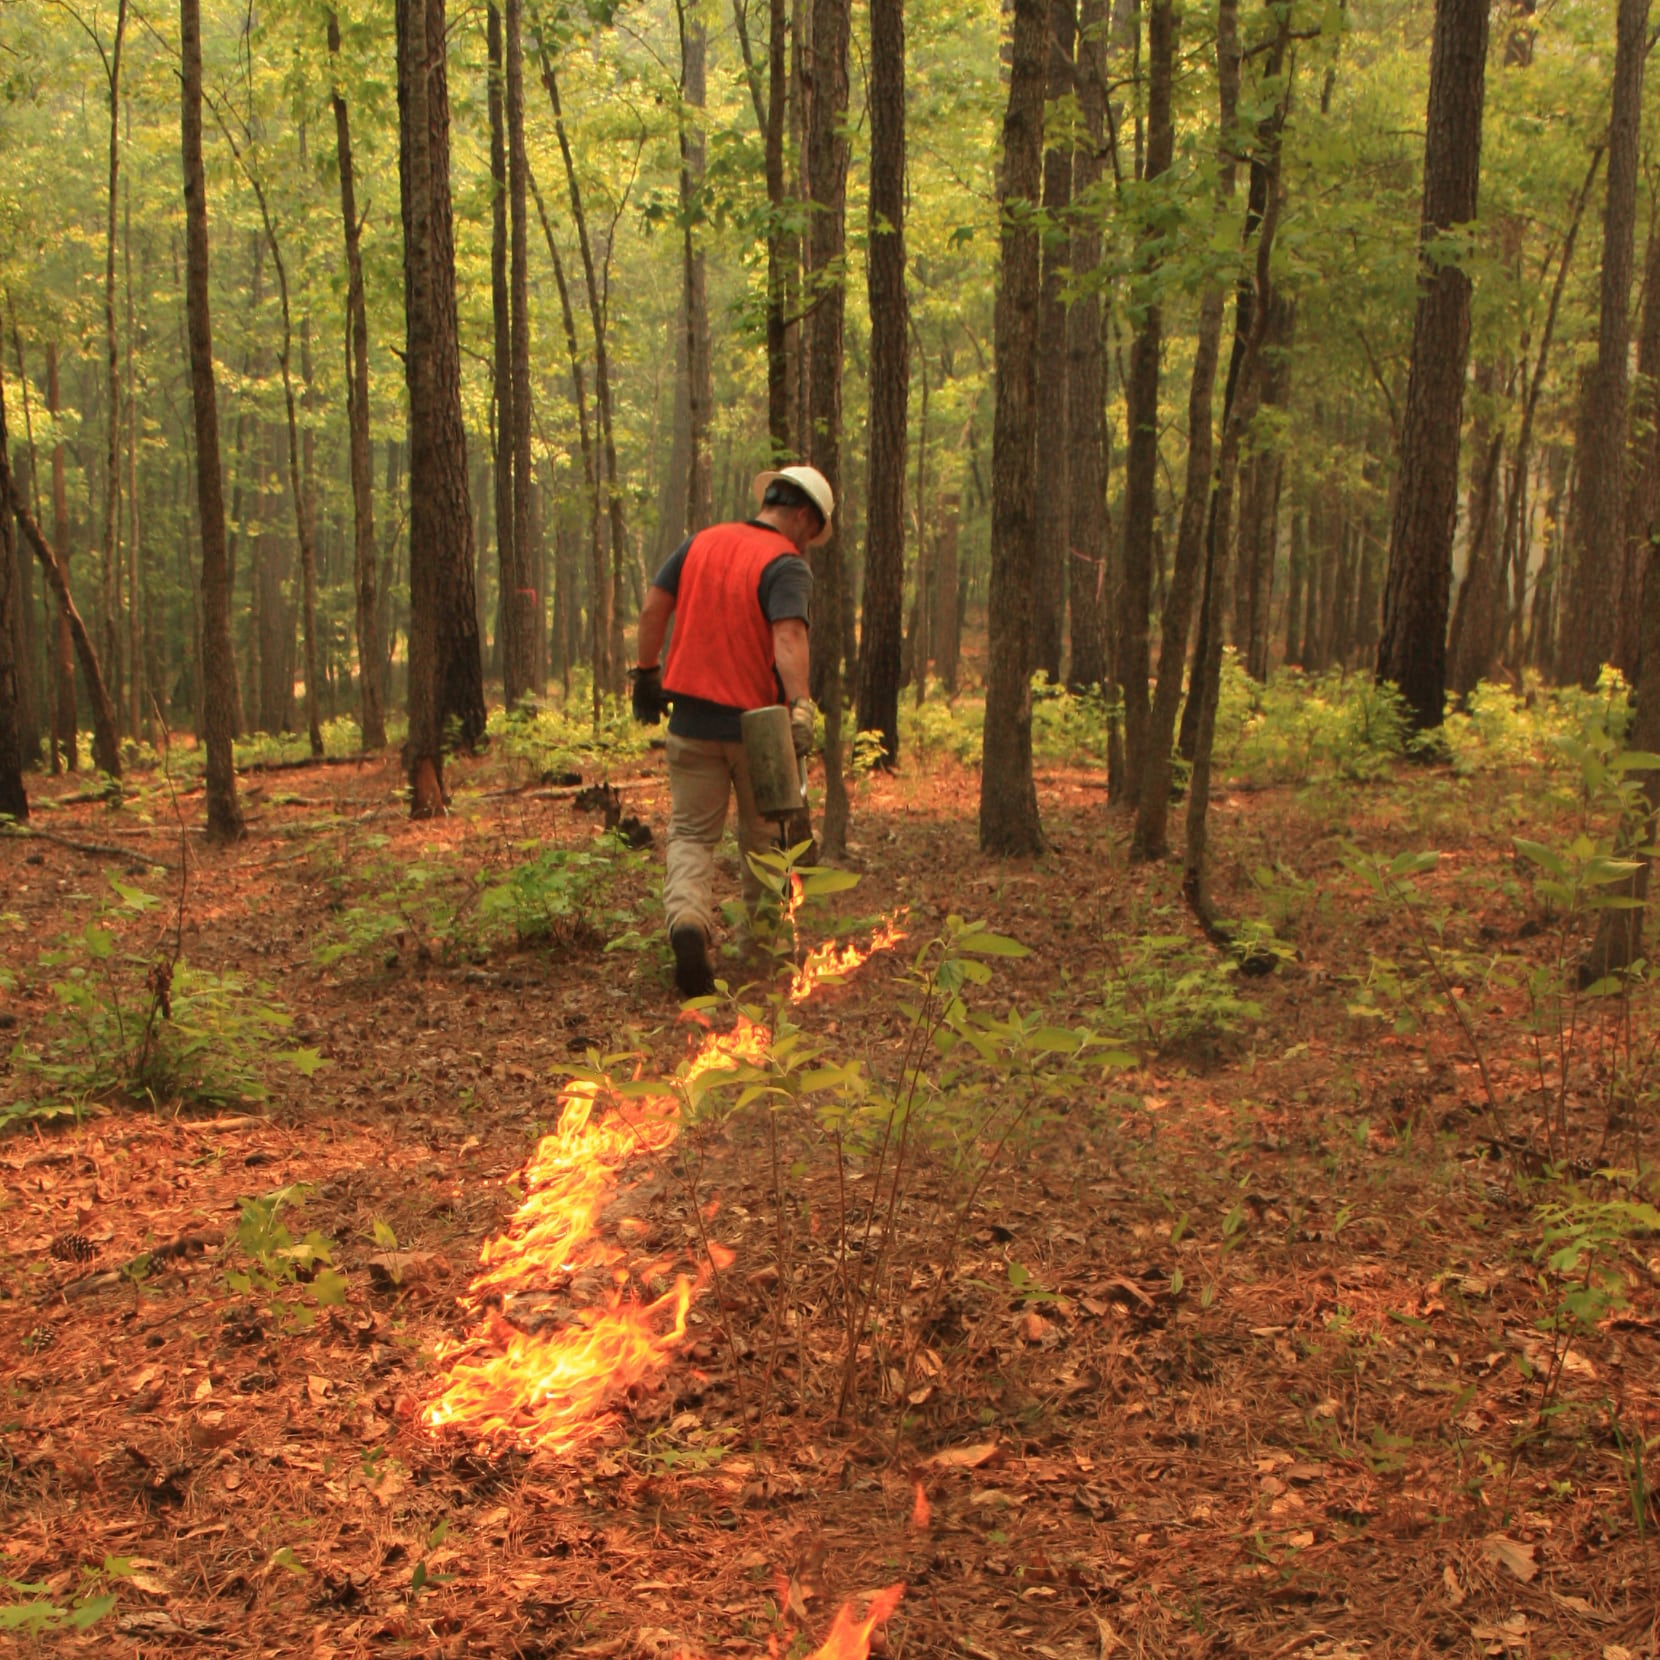 prescribed burn in forest